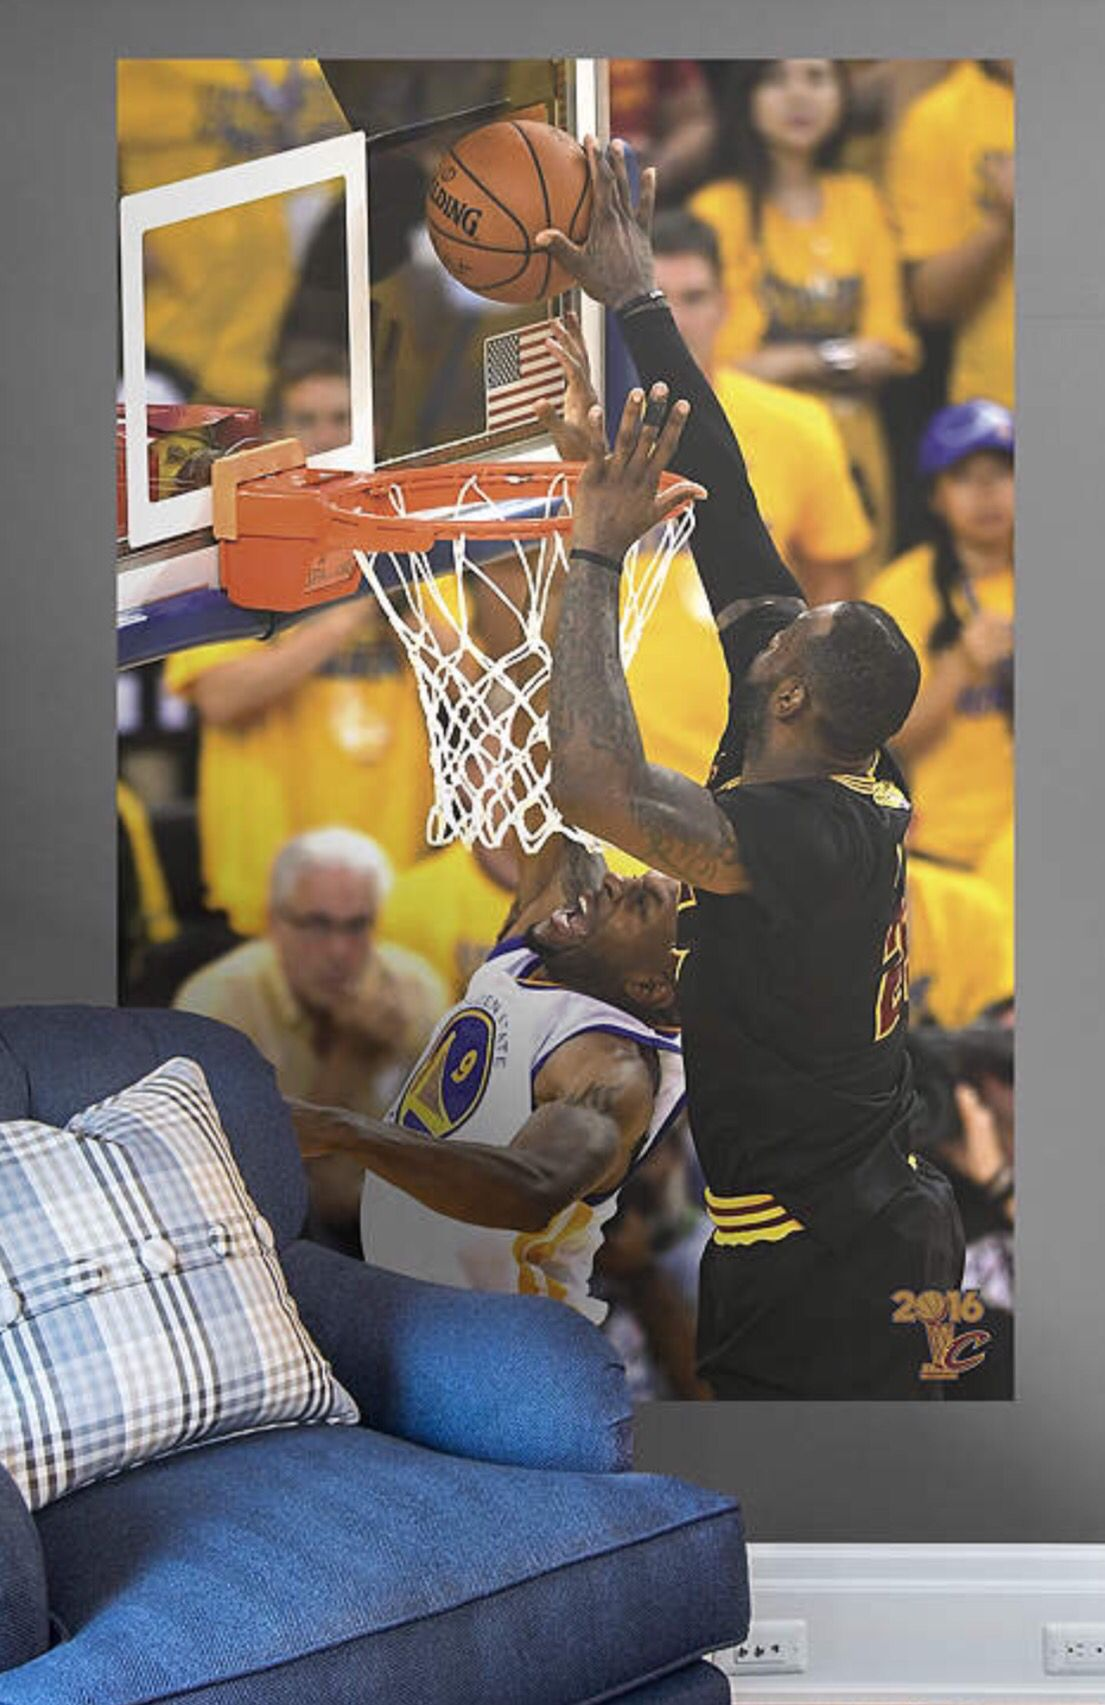 Pin by walt sokira on home ideas pinterest explore nba finals game nba cleveland and more amipublicfo Image collections